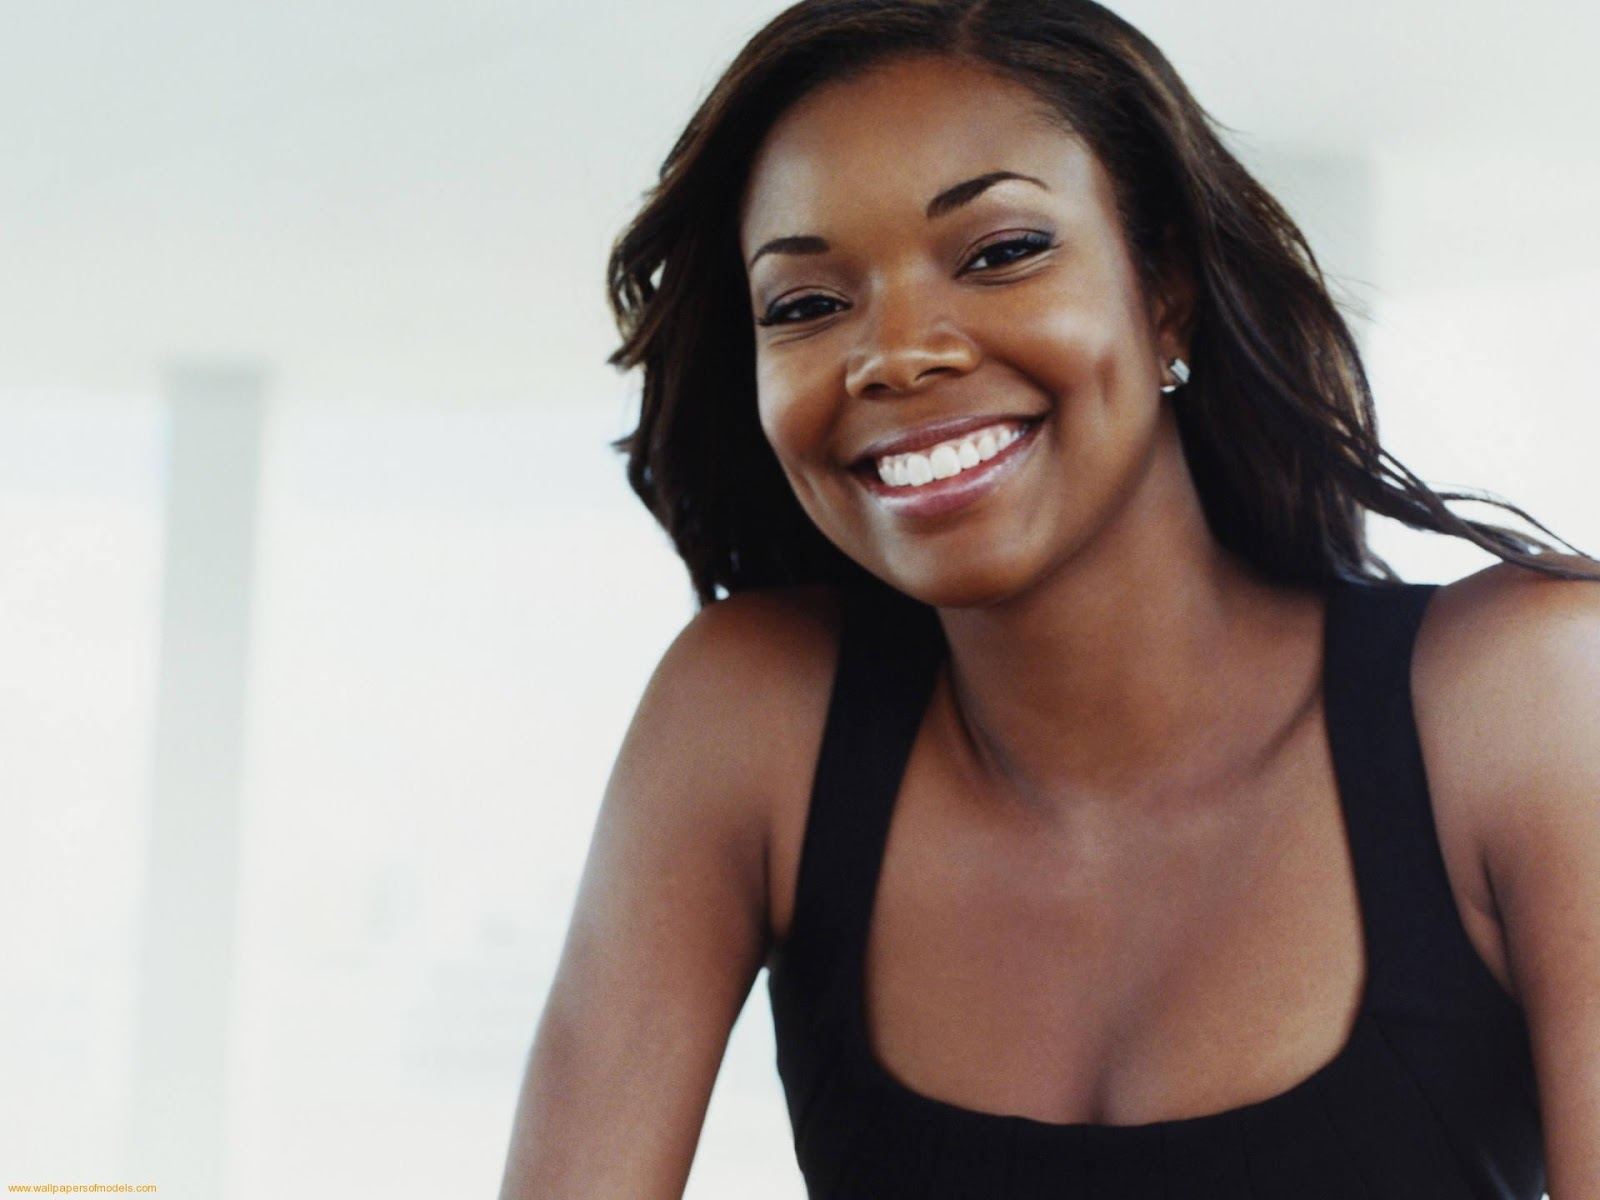 ''MY FATHER WAS ONCE MISTAKEN FOR A CONVICT AND WAS HARRASSED'' -GABRIELLE UNION